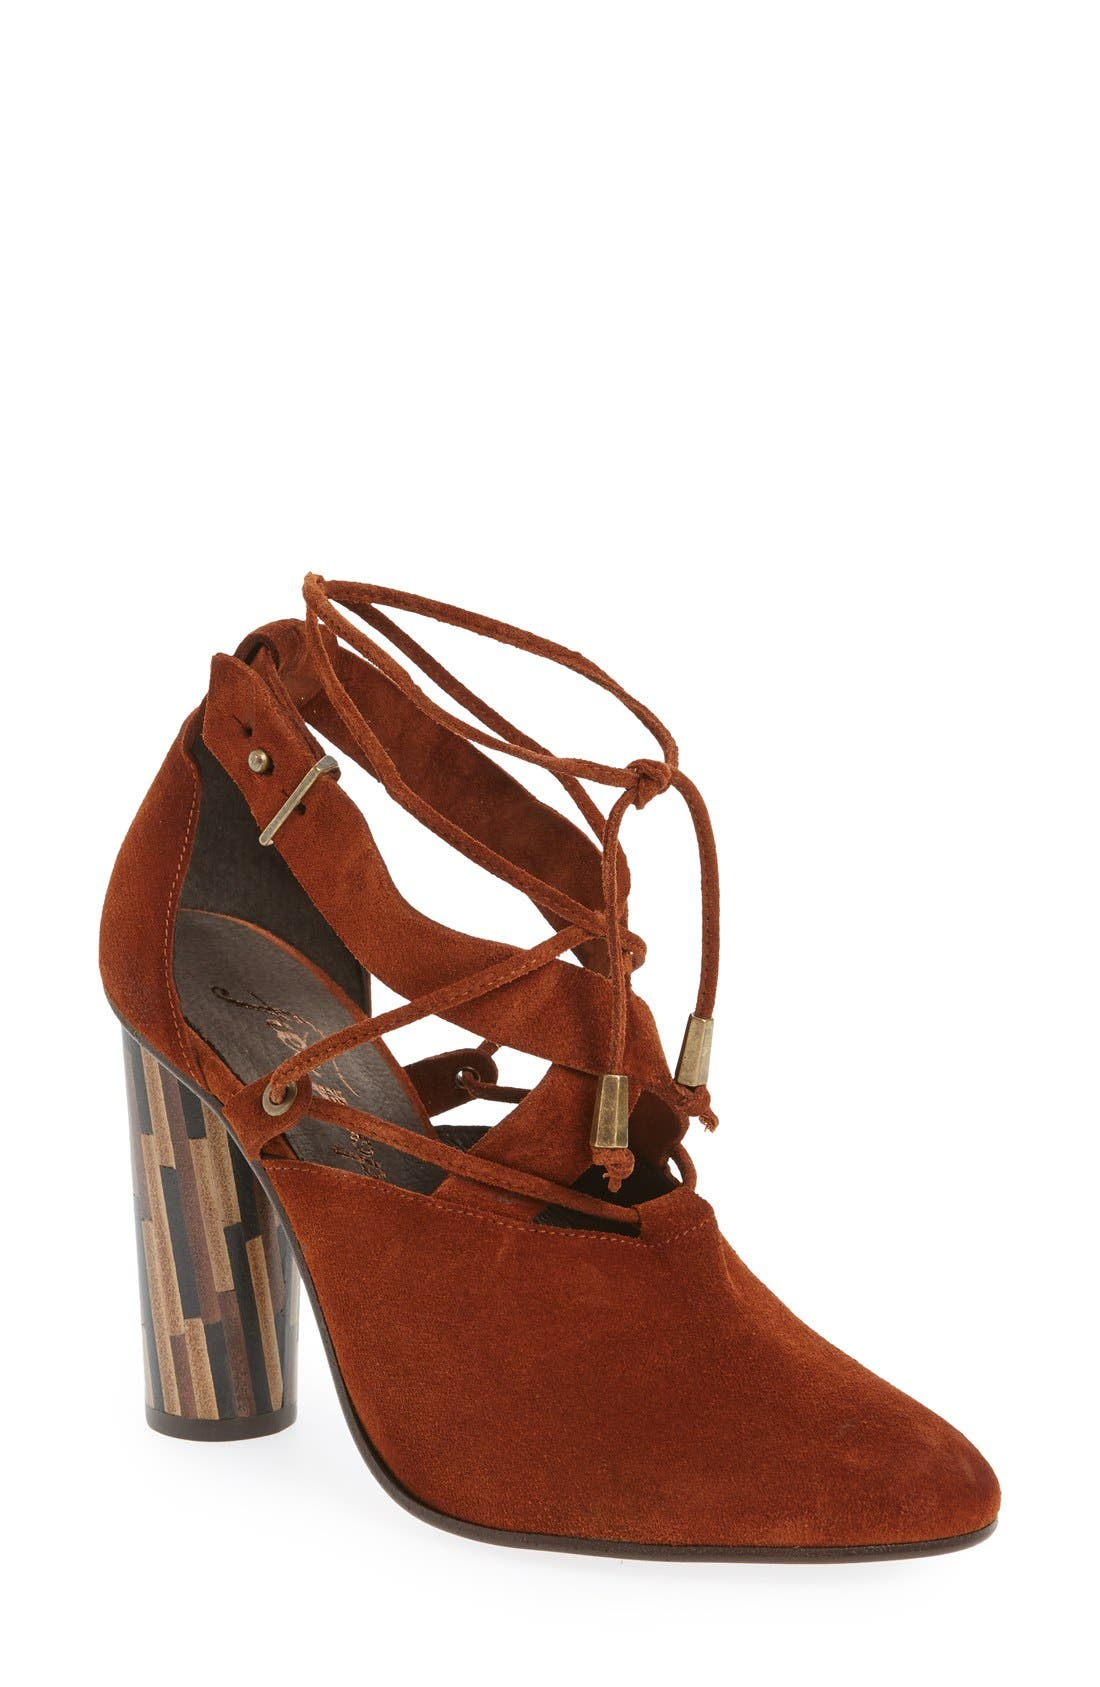 Alternate Image 1 Selected - Free People 'Nouvella' Lace-Up Pump (Women)